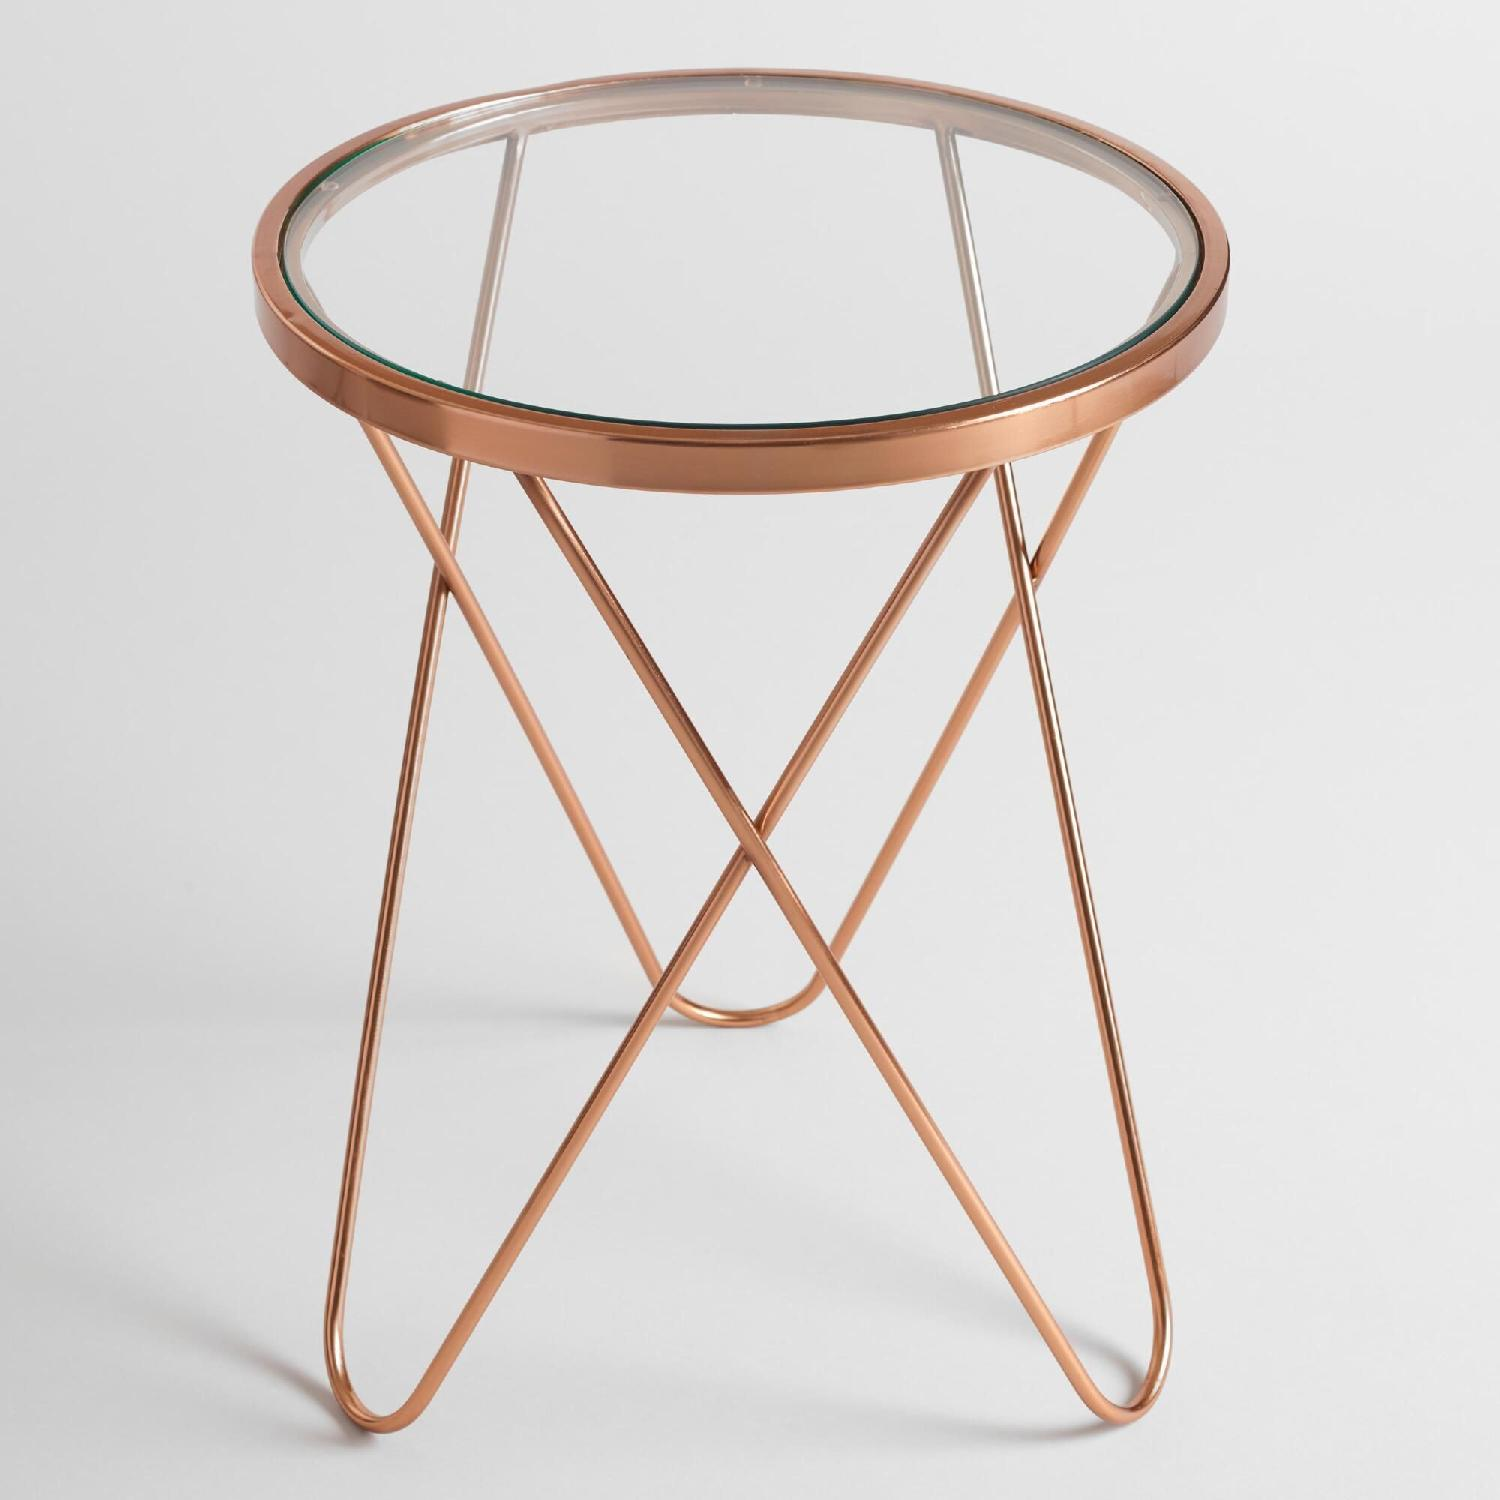 Round Rose Gold Metal Side Table w/ Glass Top - image-5